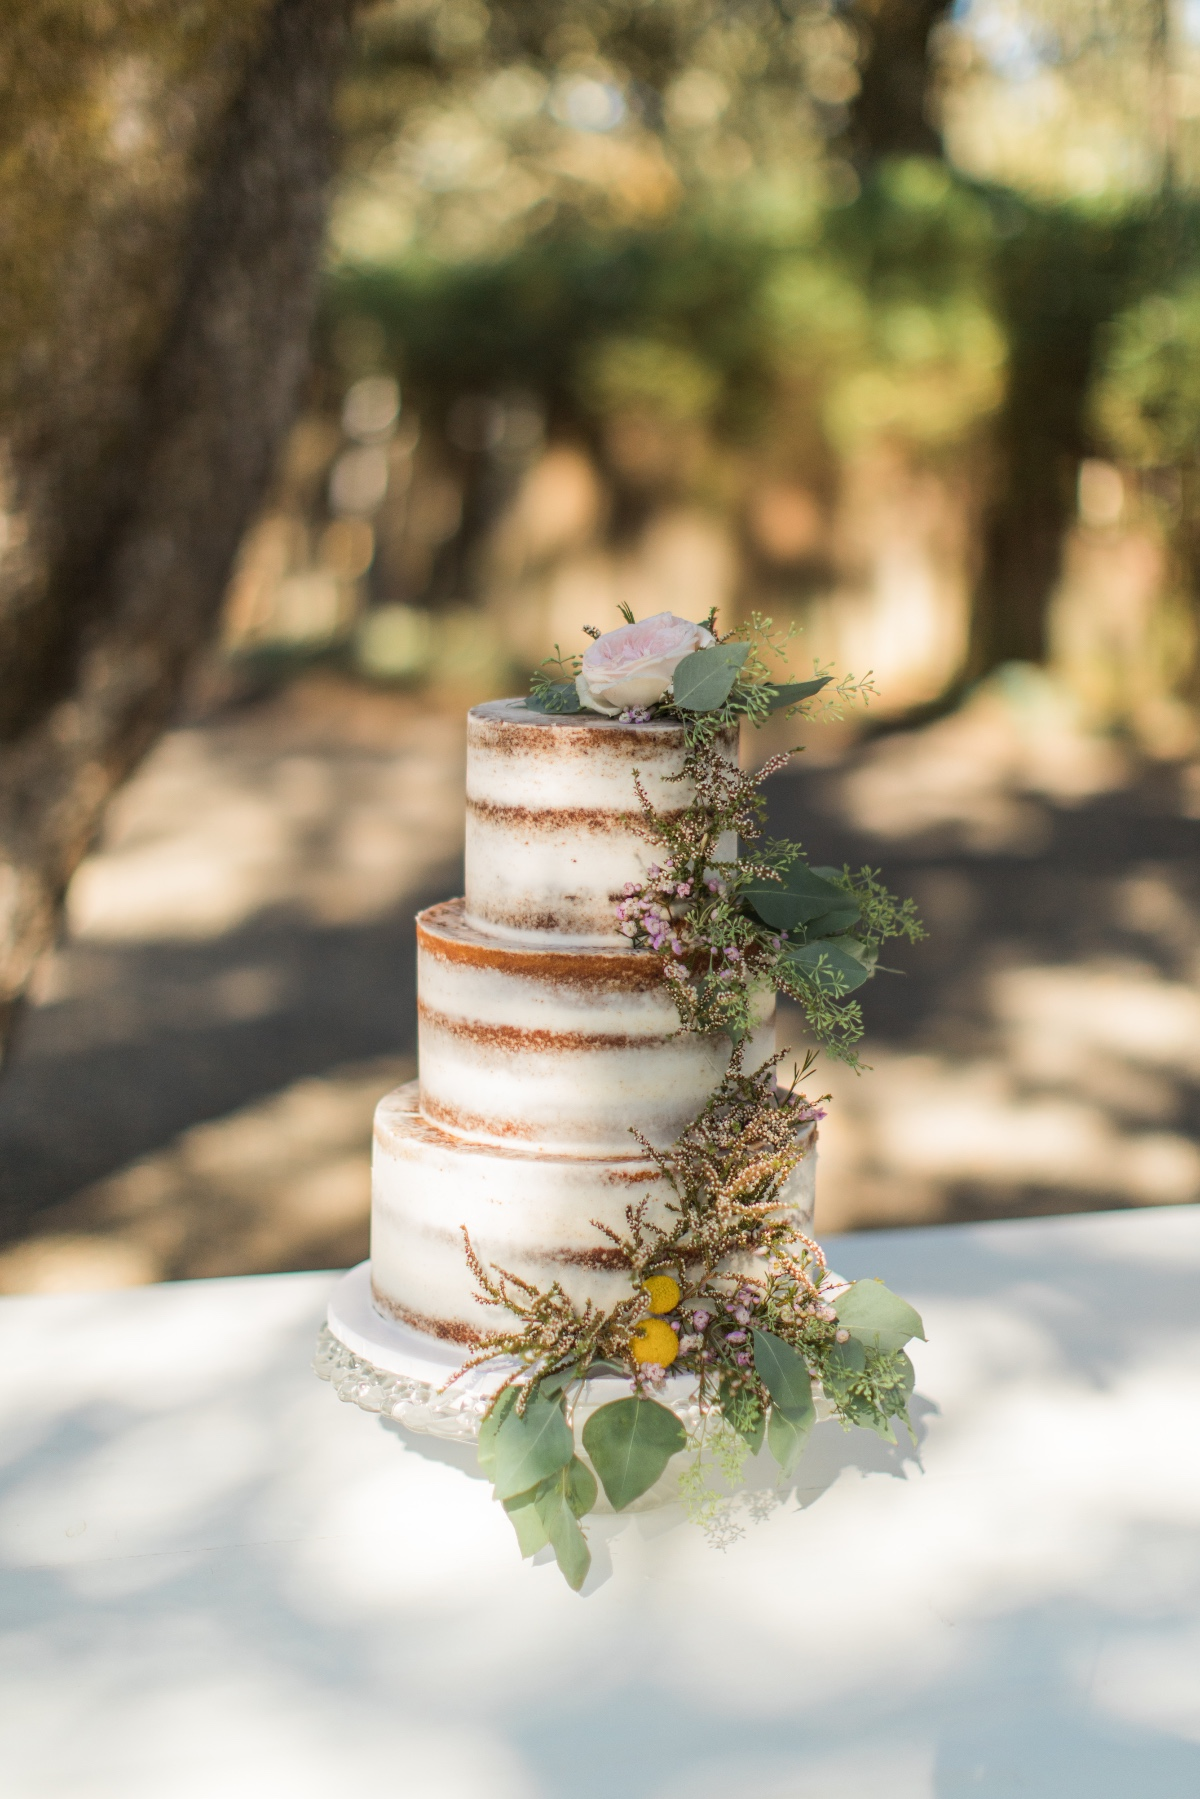 naked wedding cake adorned with greenery and florals